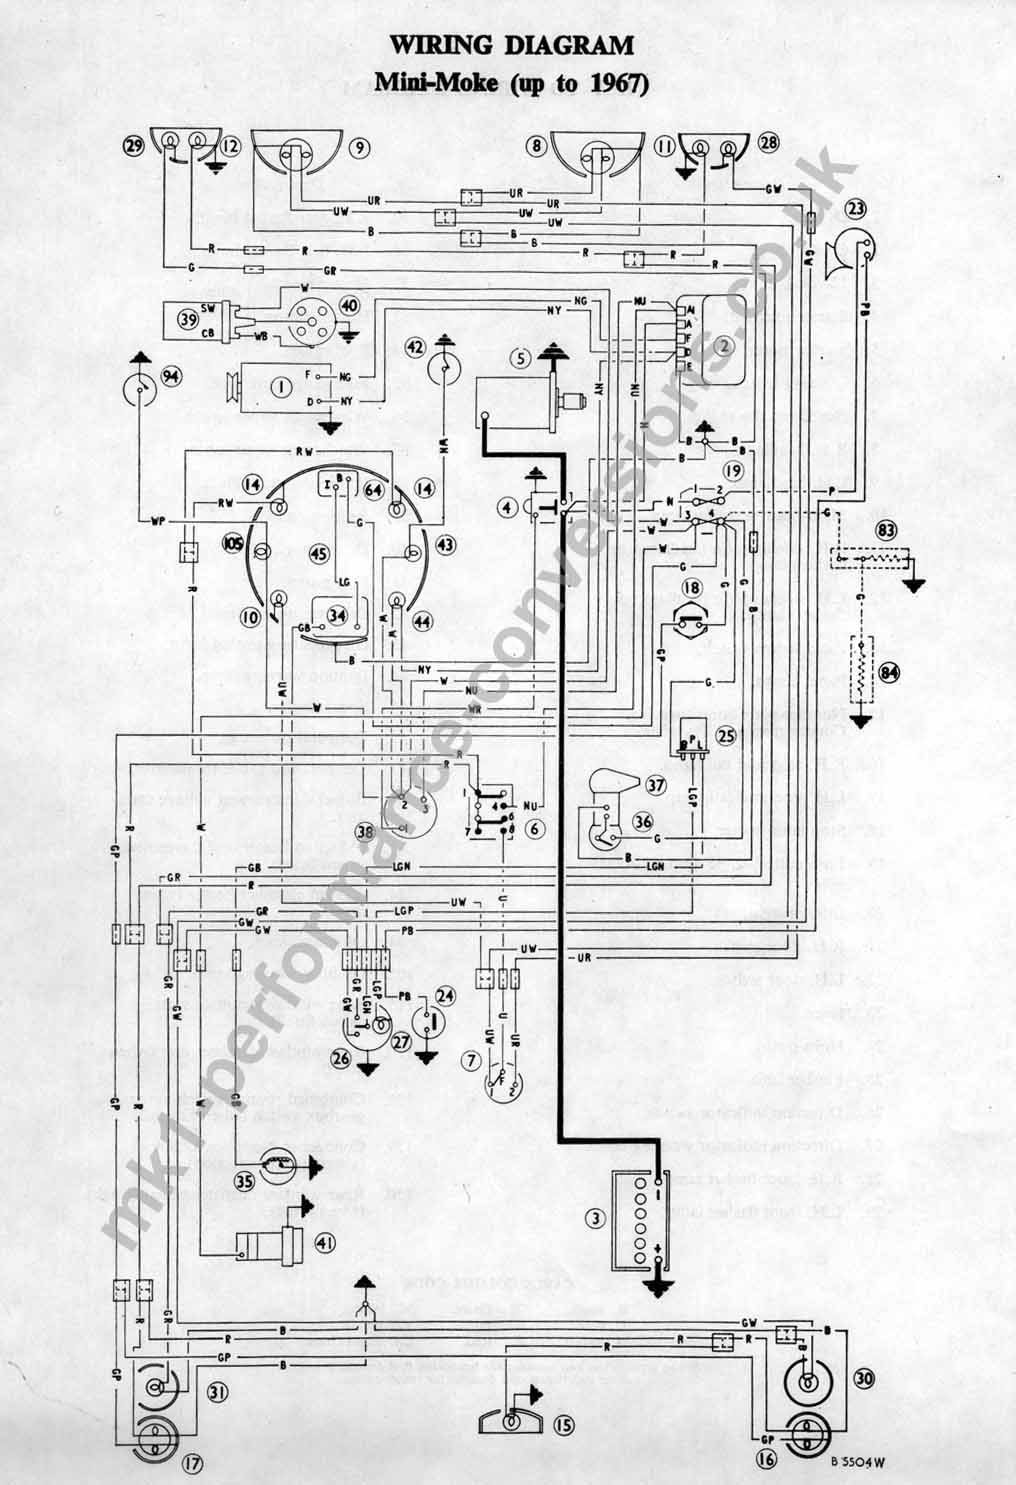 mk1_moke_wiring technical (electrical) escort mk1 wiring diagram at gsmportal.co